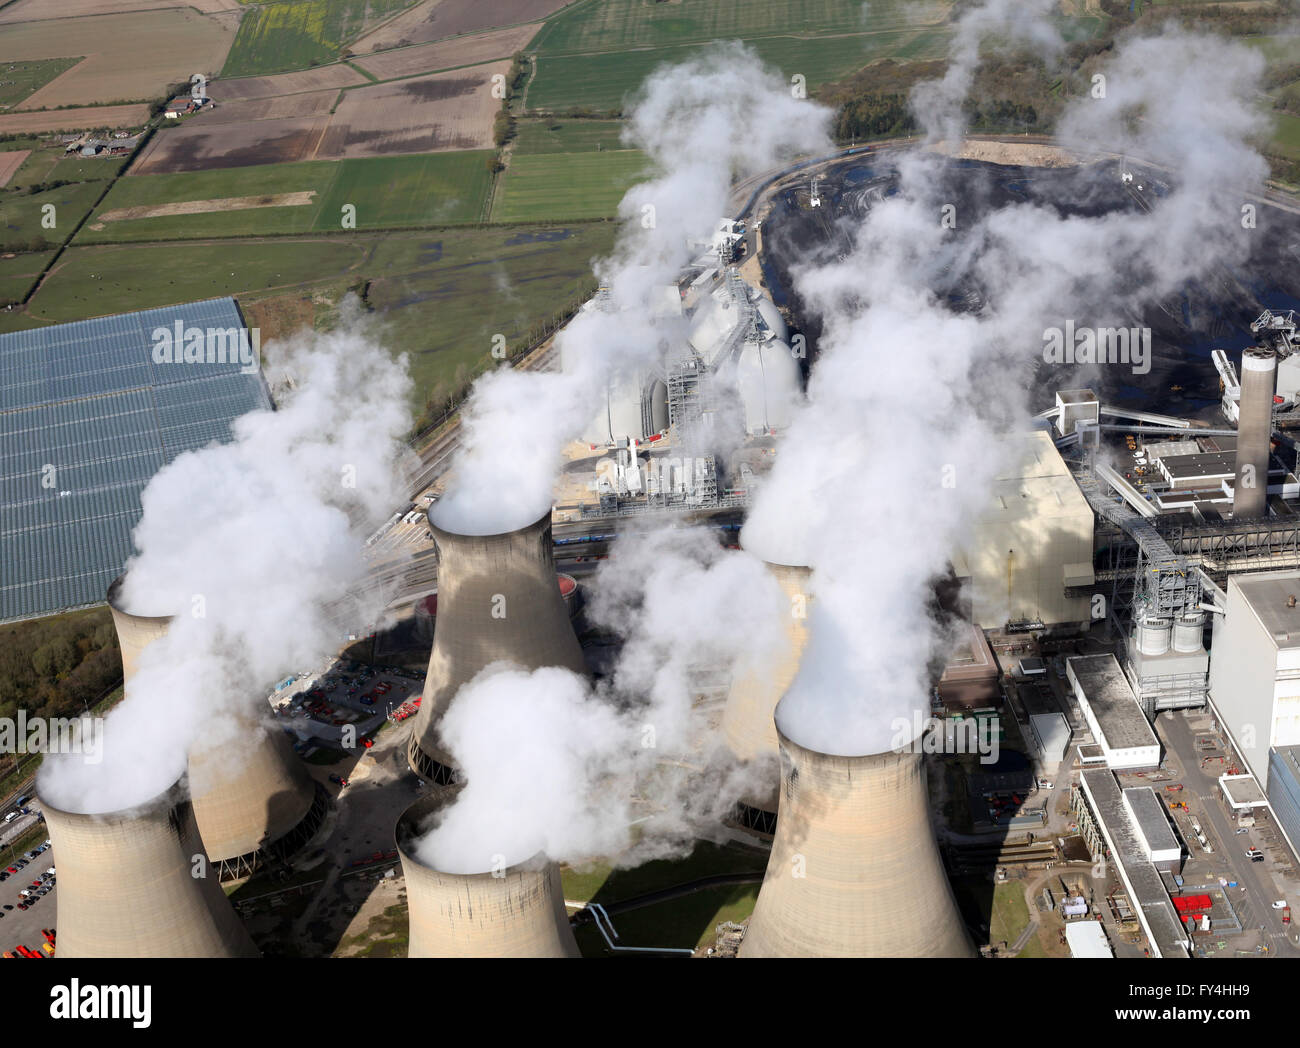 aerial view of steam from the cooling towers at Drax Power Station in Yorkshire, UK - Stock Image